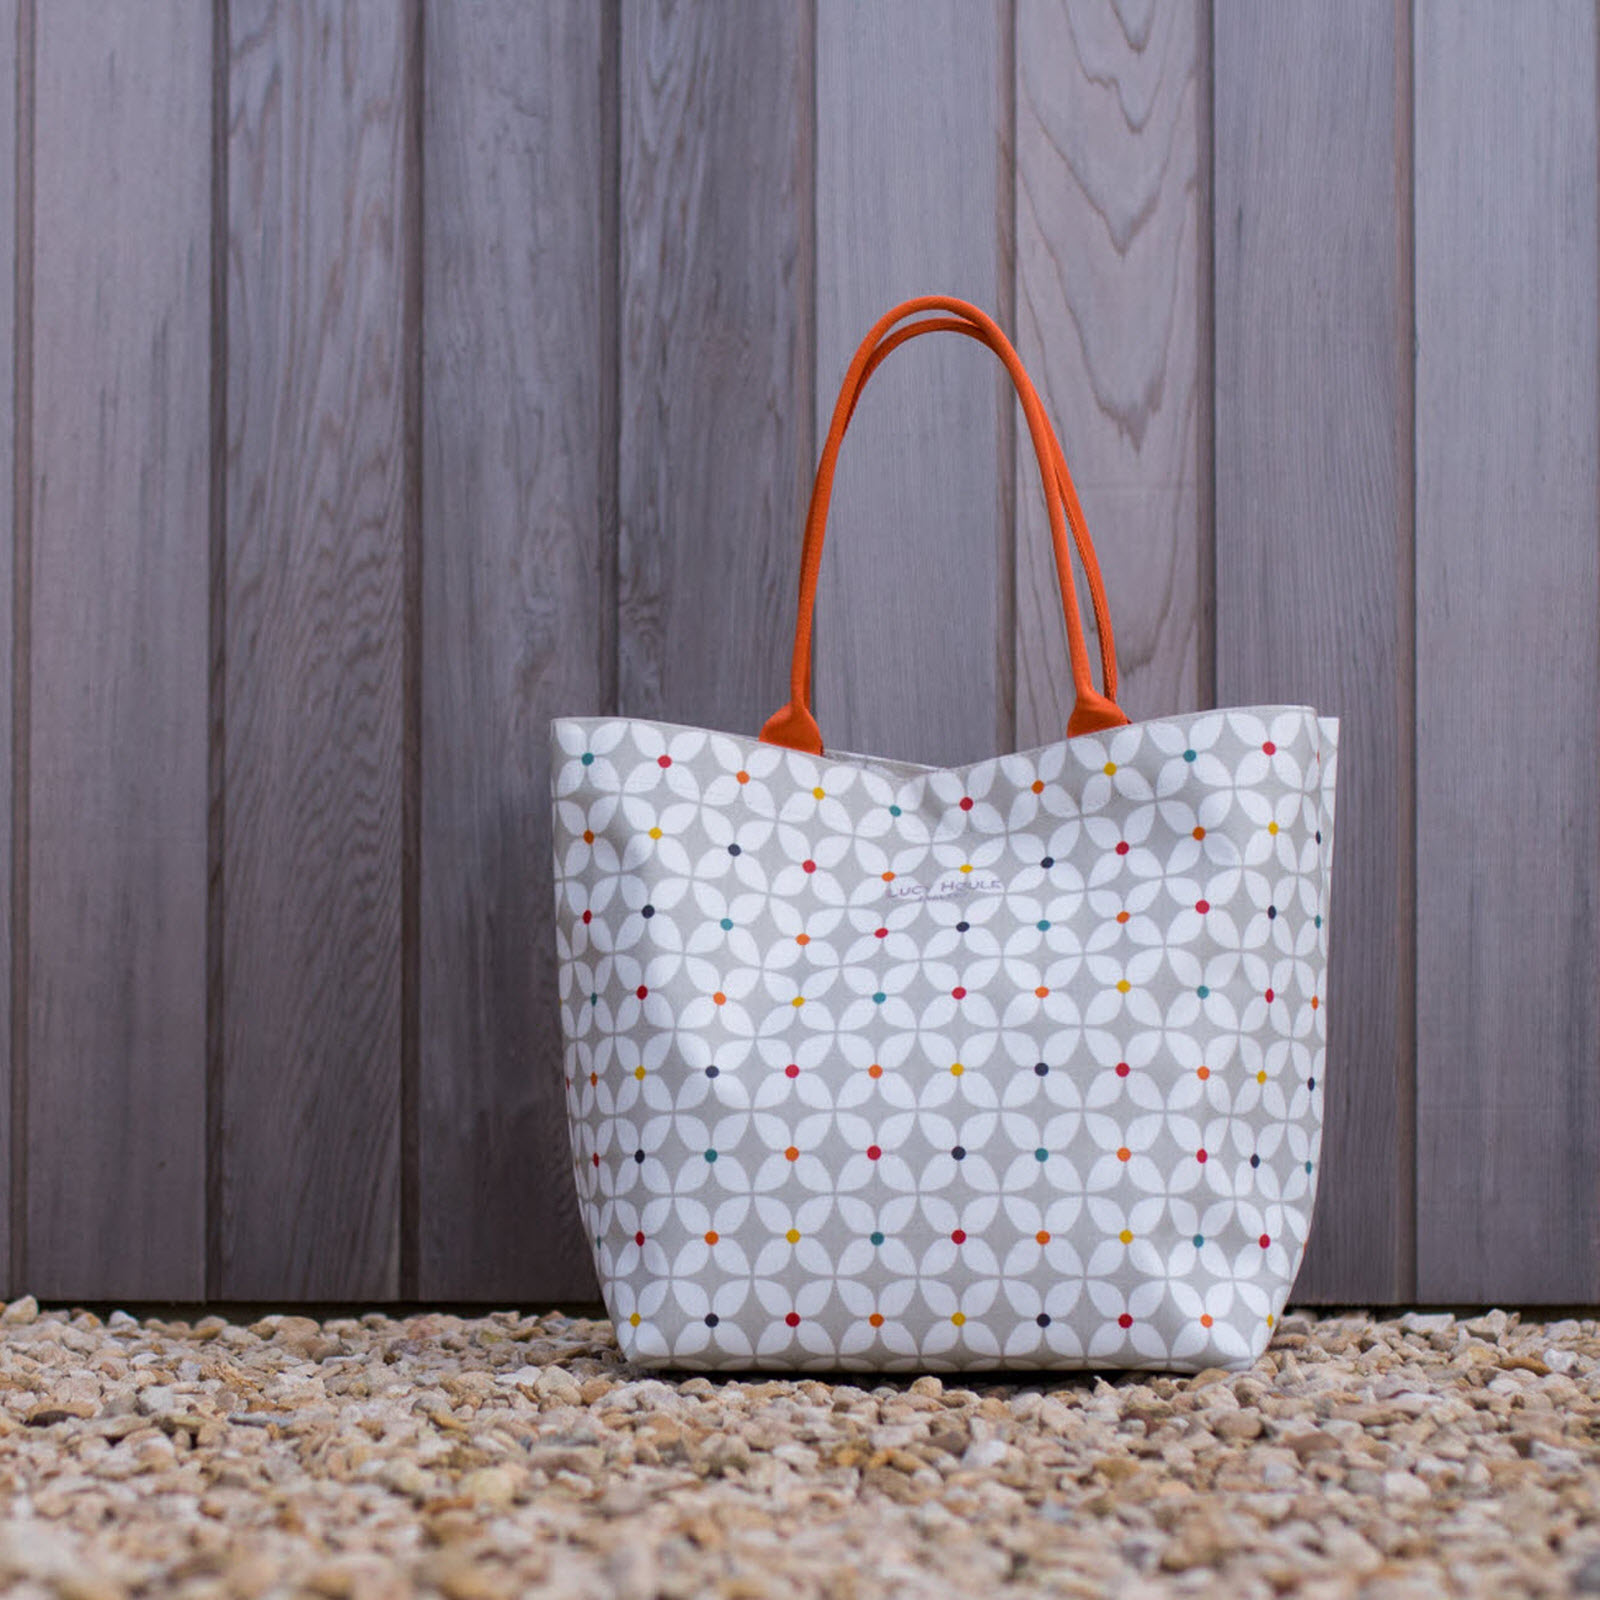 Modern Daisy Taupe Large Tote Bag with Orange Handles